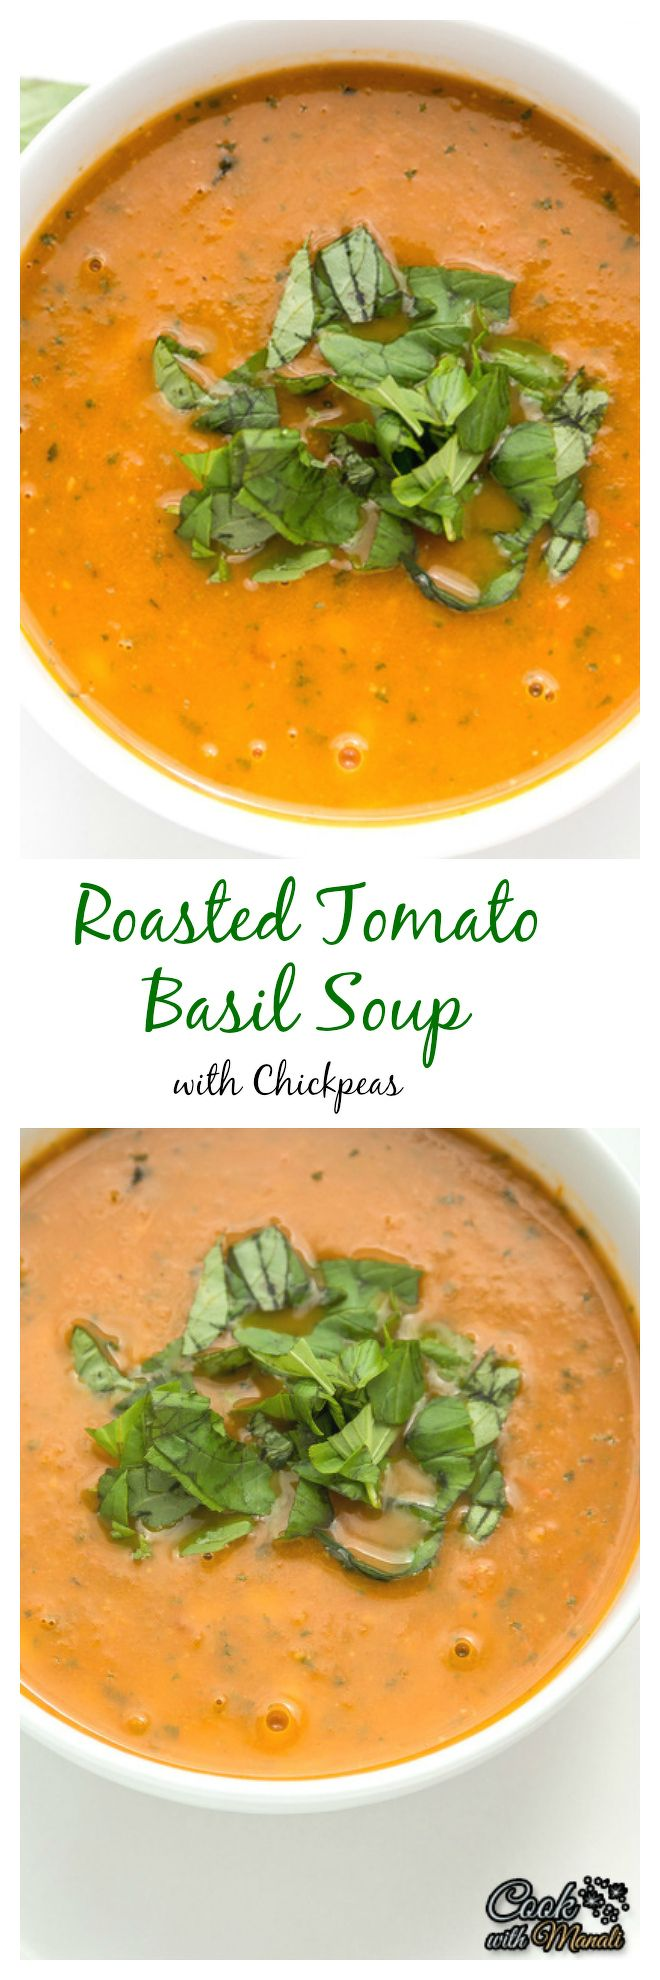 Roasted tomato basil soup with added chickpeas - makes a healthy and delicious dinner. Find the recipe on www.cookwithmanali.com